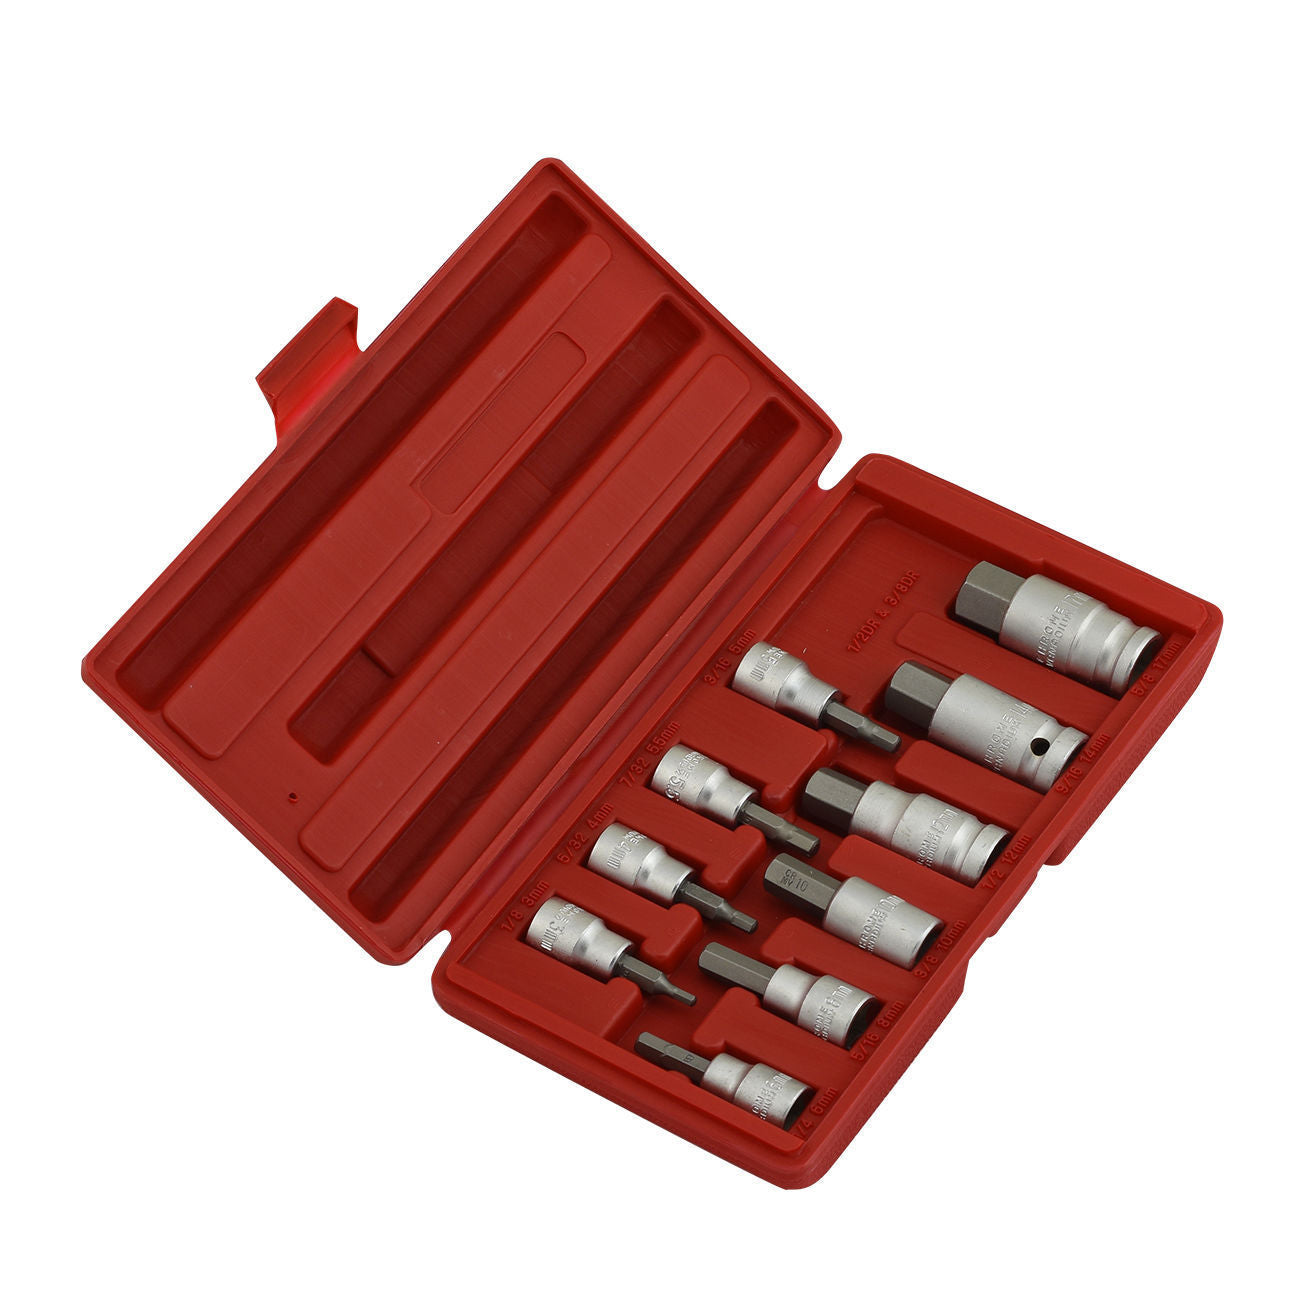 "10 piece 3/8"", 1/2"" Drive Metric Hex Bit Socket Set"